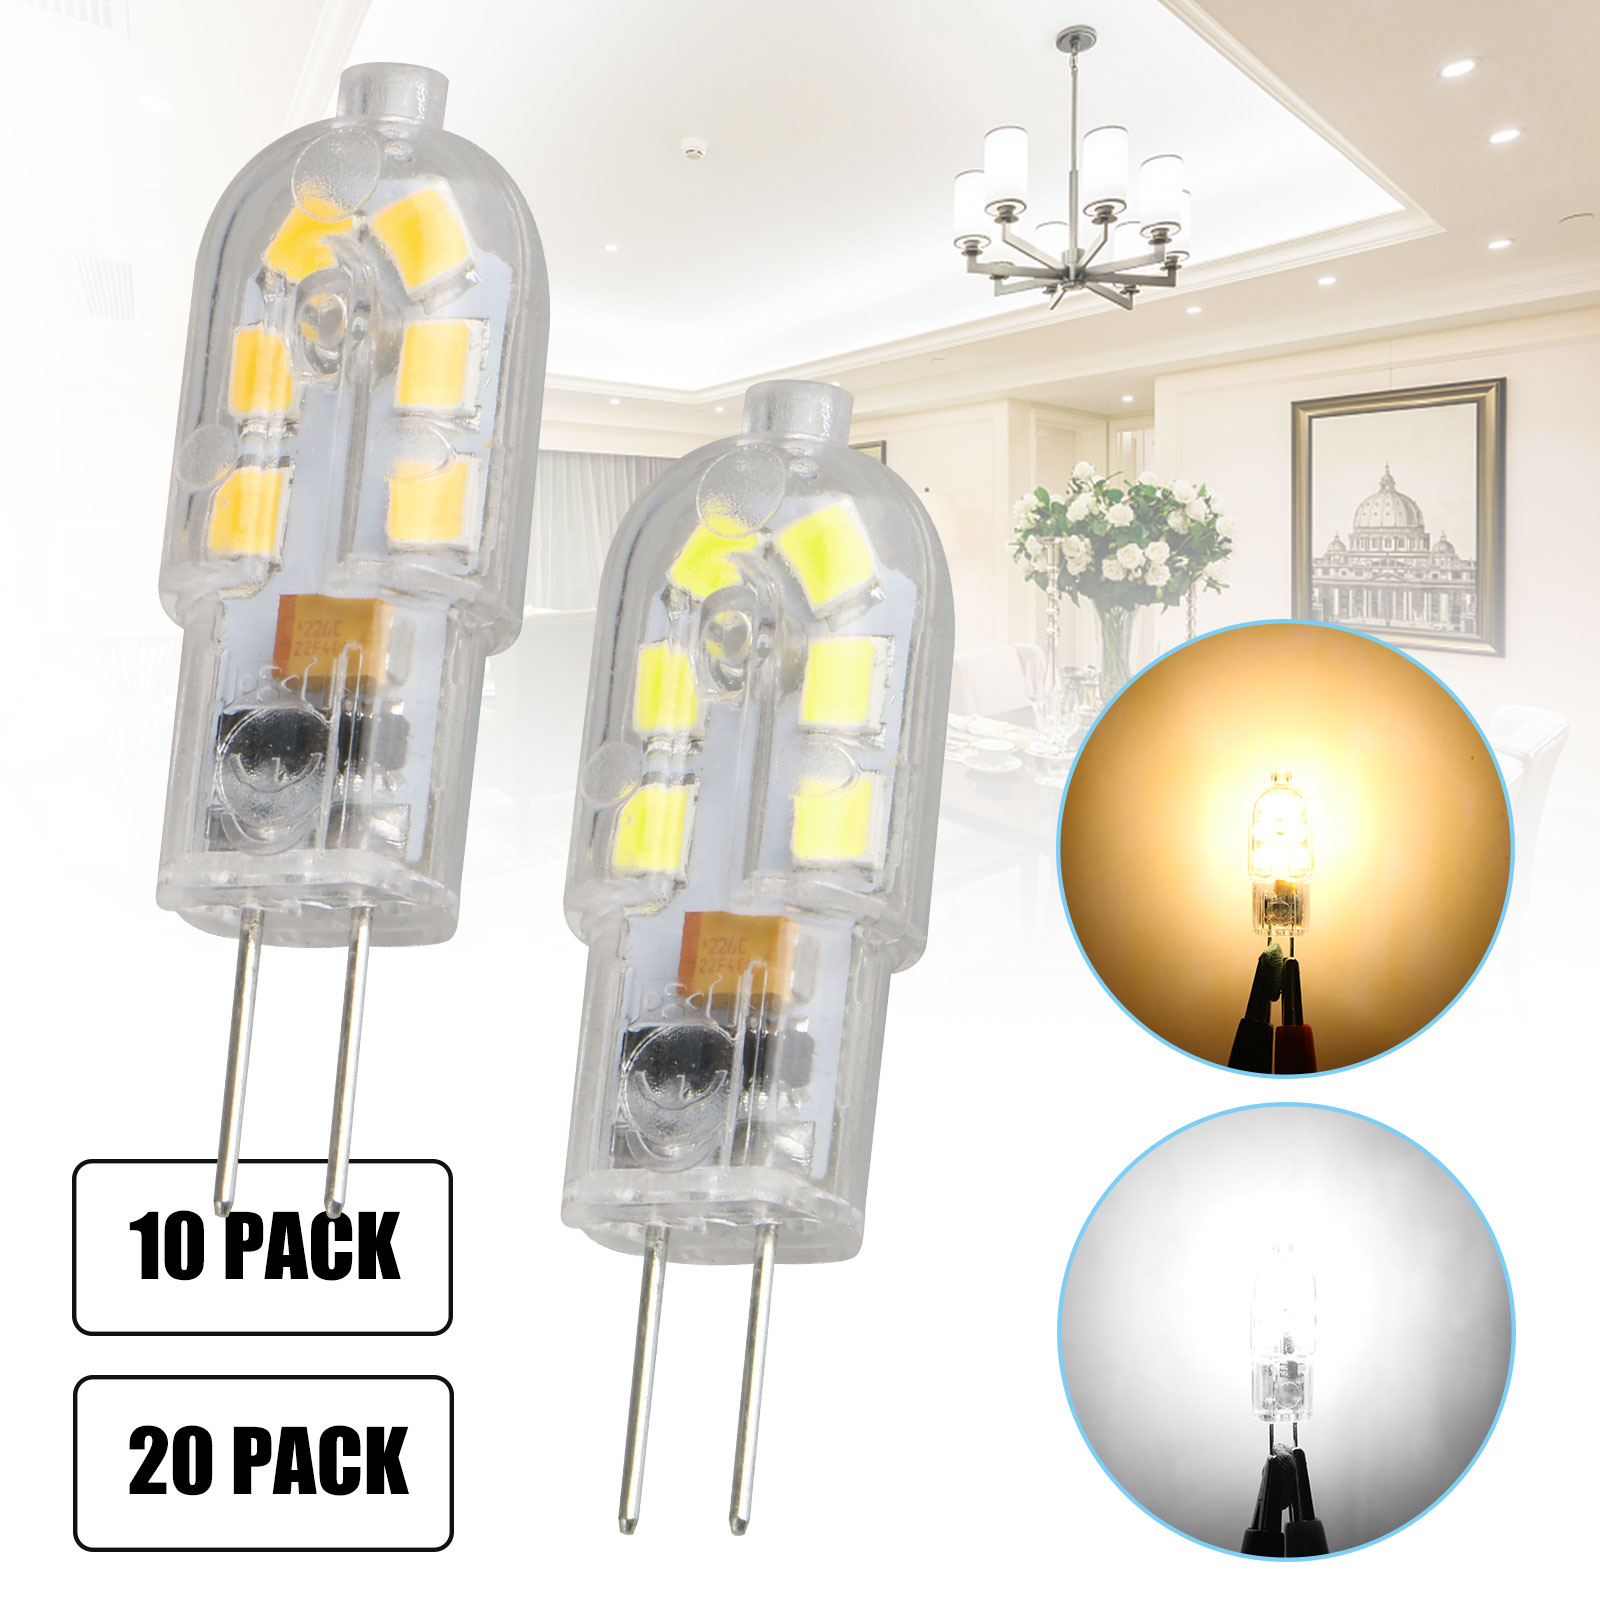 10X20X G4 2W Capsule LED Light Bulb Replace Halogen Bulbs 12V 6000K ...